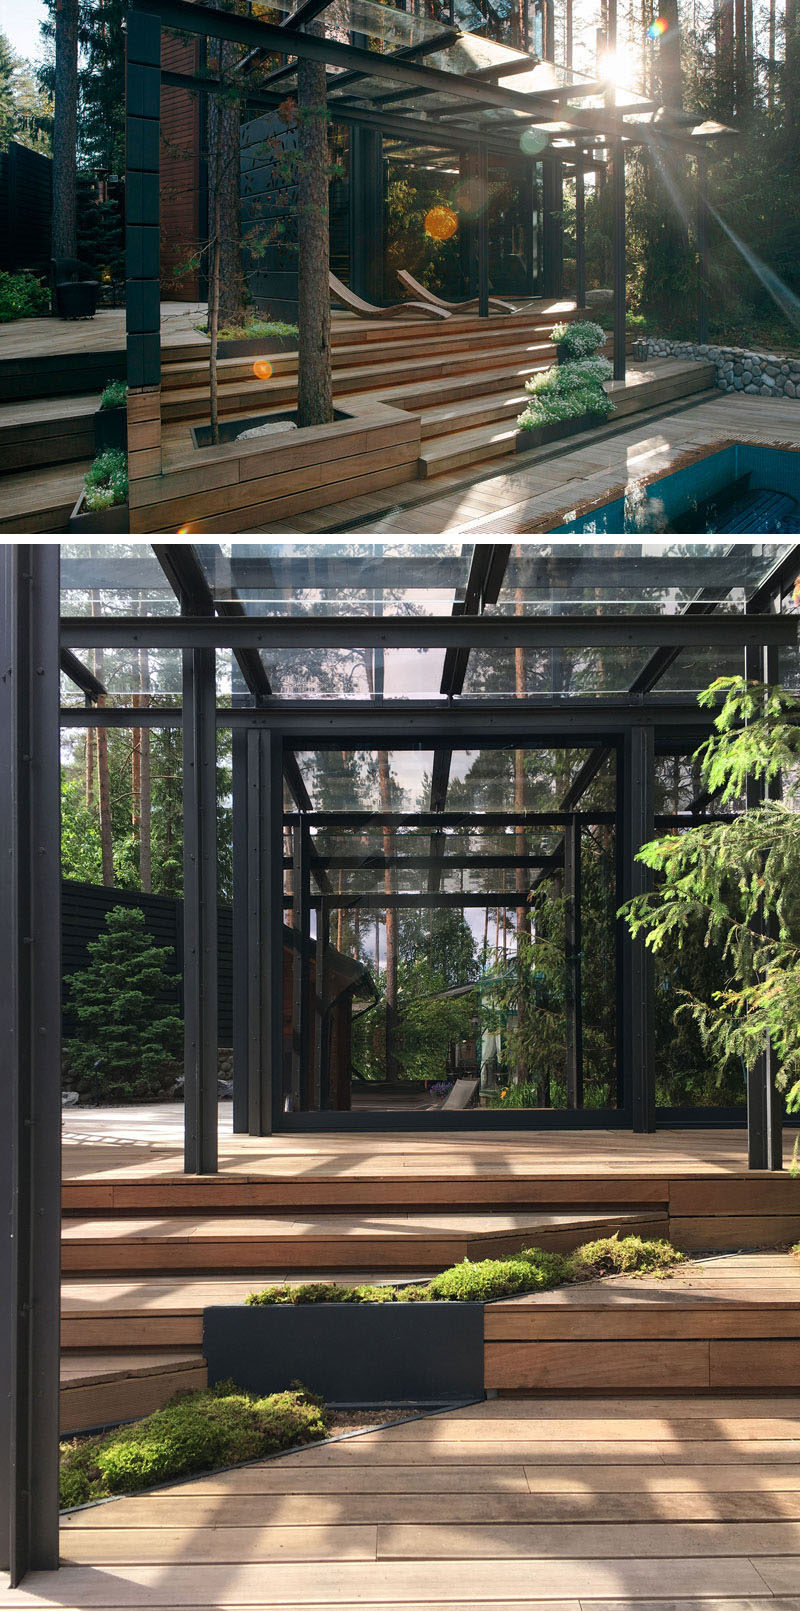 Surrounded by mature trees, this modern gym has an outdoor area with a pool, sun deck and built-in planters.